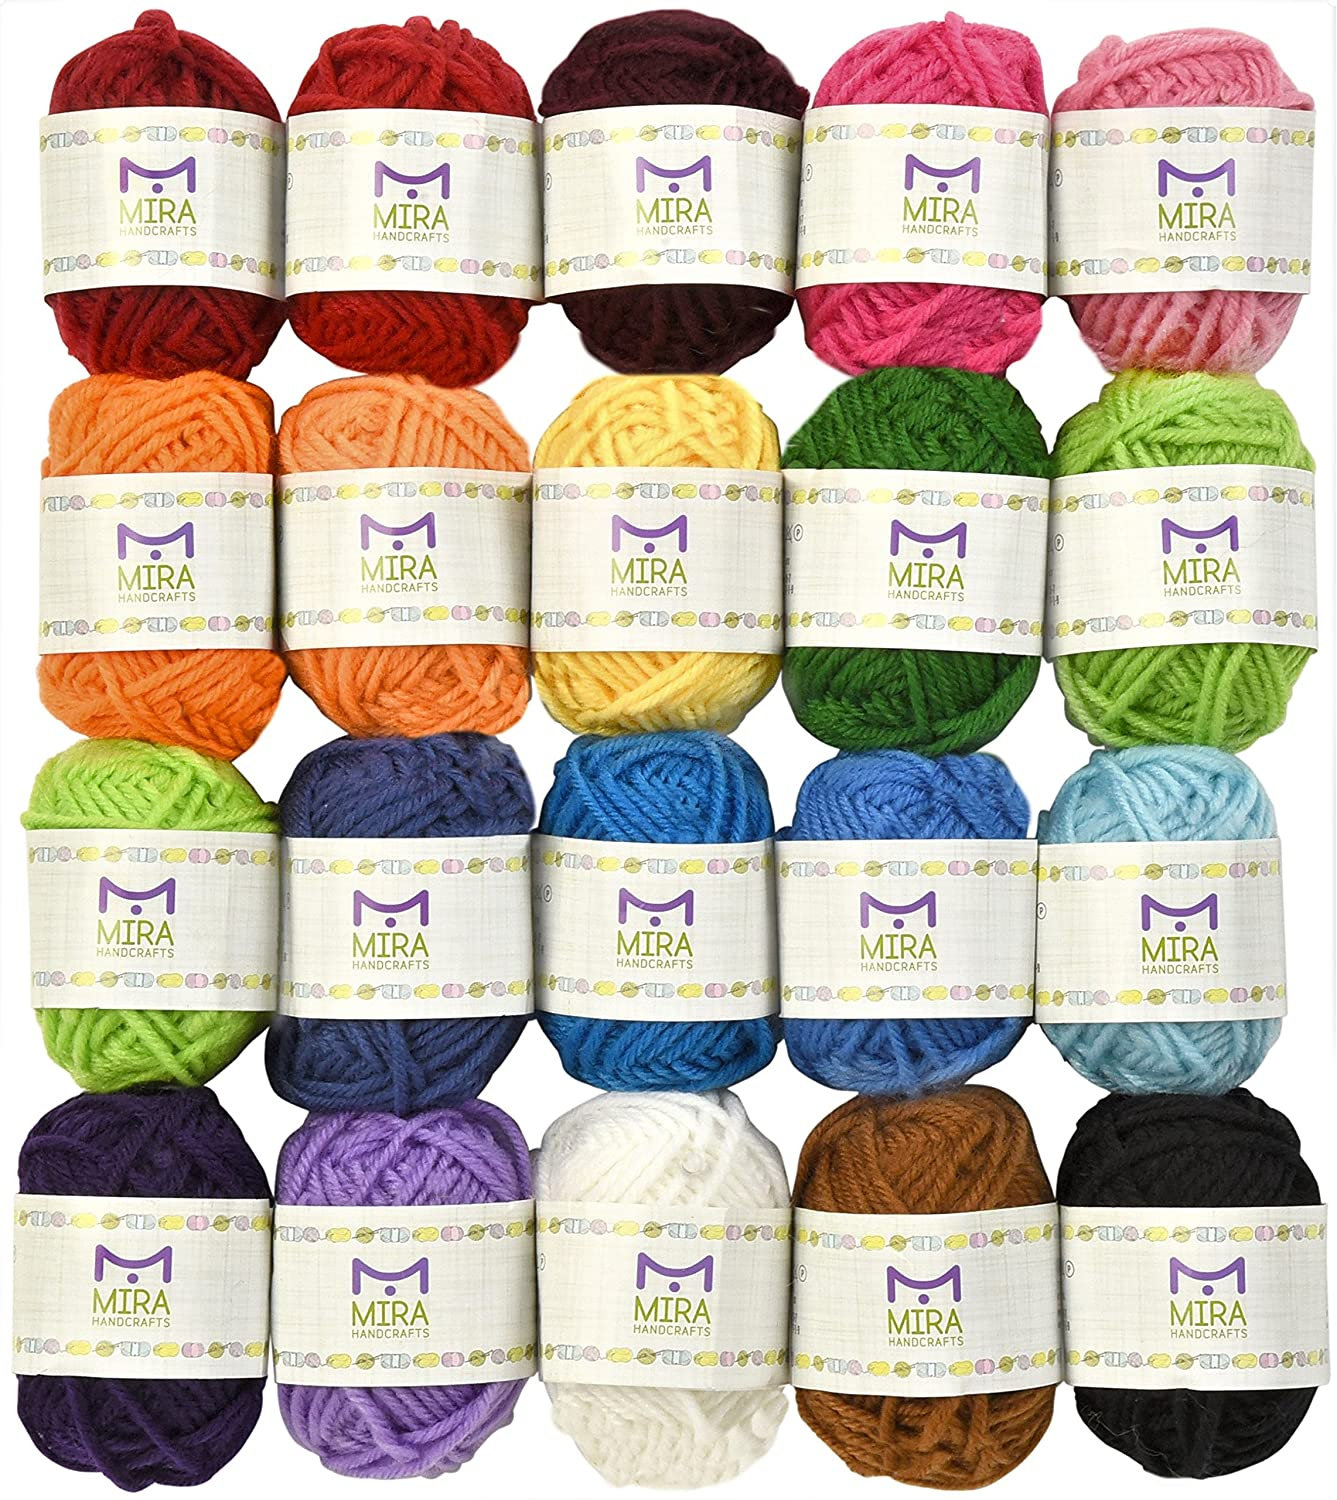 Mira Handcrafts 20 Acrylic Yarn Bonbons - 438 Yards Multicolor Yarn in Total – Great Crochet and Knitting Starter Kit for Colorful Craft – Assorted Colors - 7 PDF Ebooks with Yarn Patterns Miragoods 4336926373